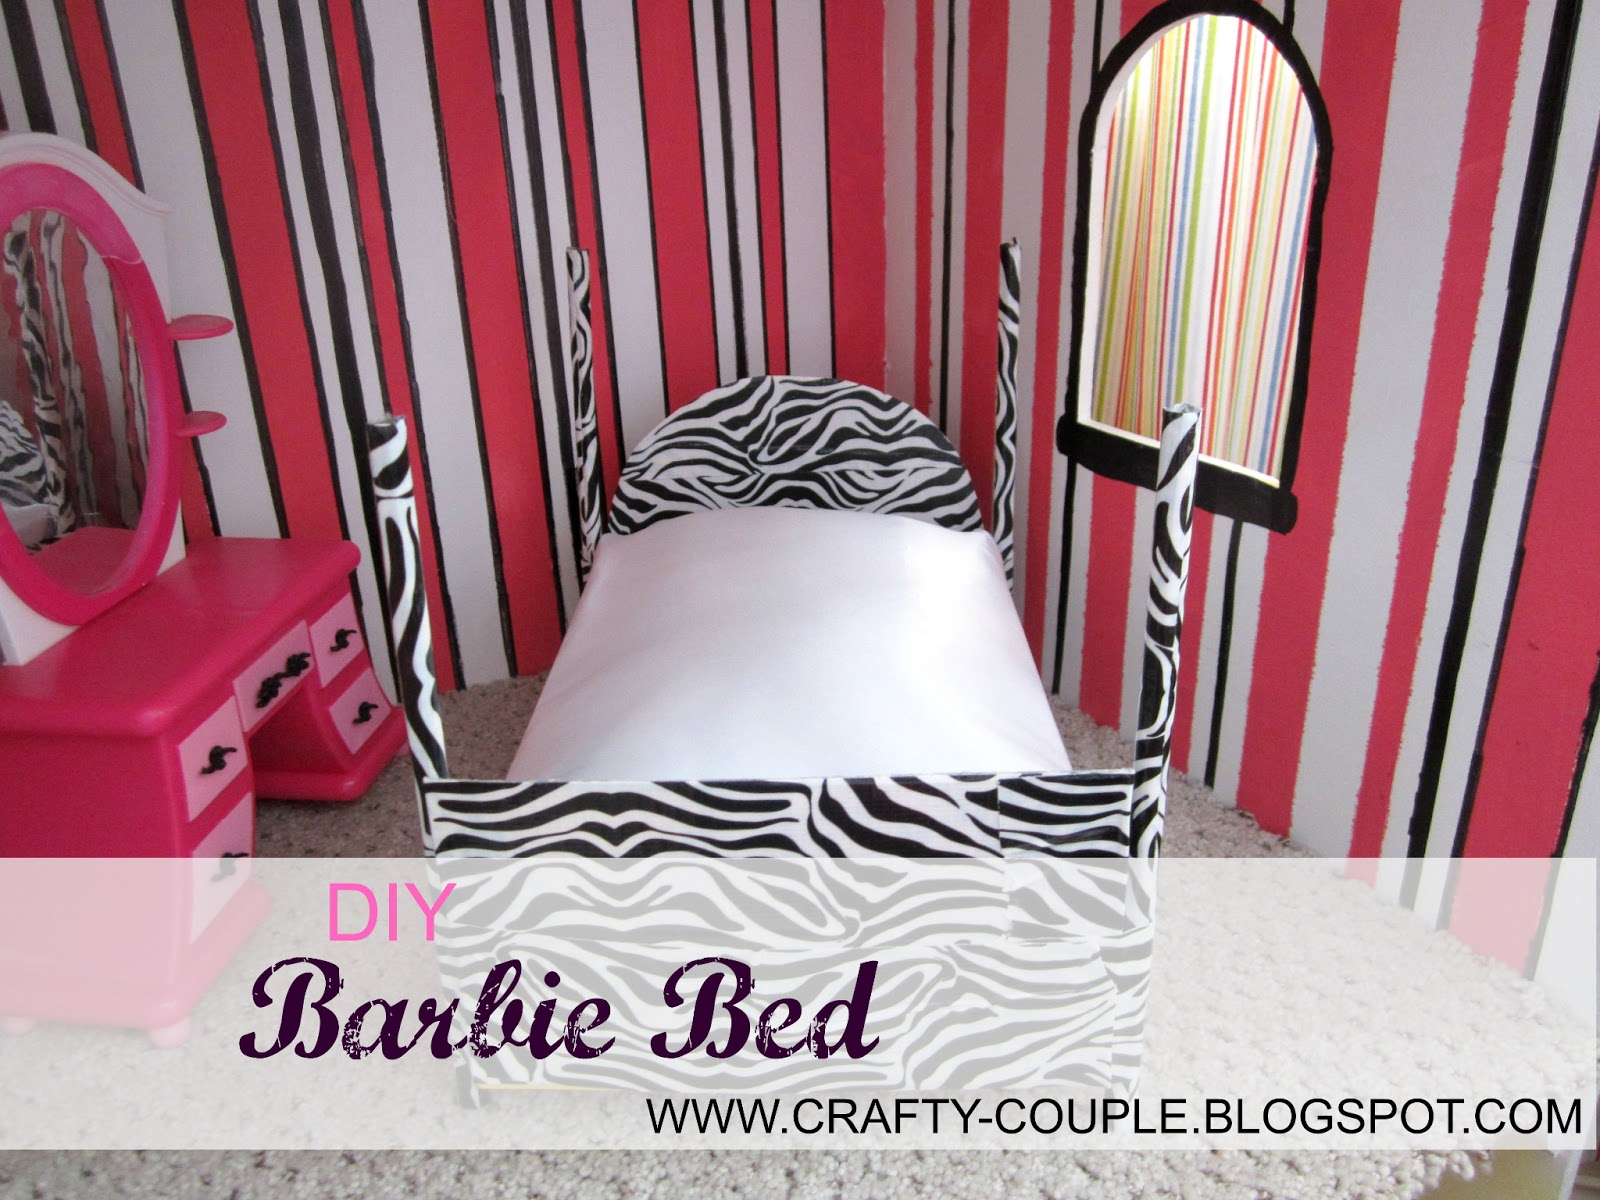 My First Room Toddler 3 Piece Room In A Box: Crafty Couple: Diy Barbie Bed